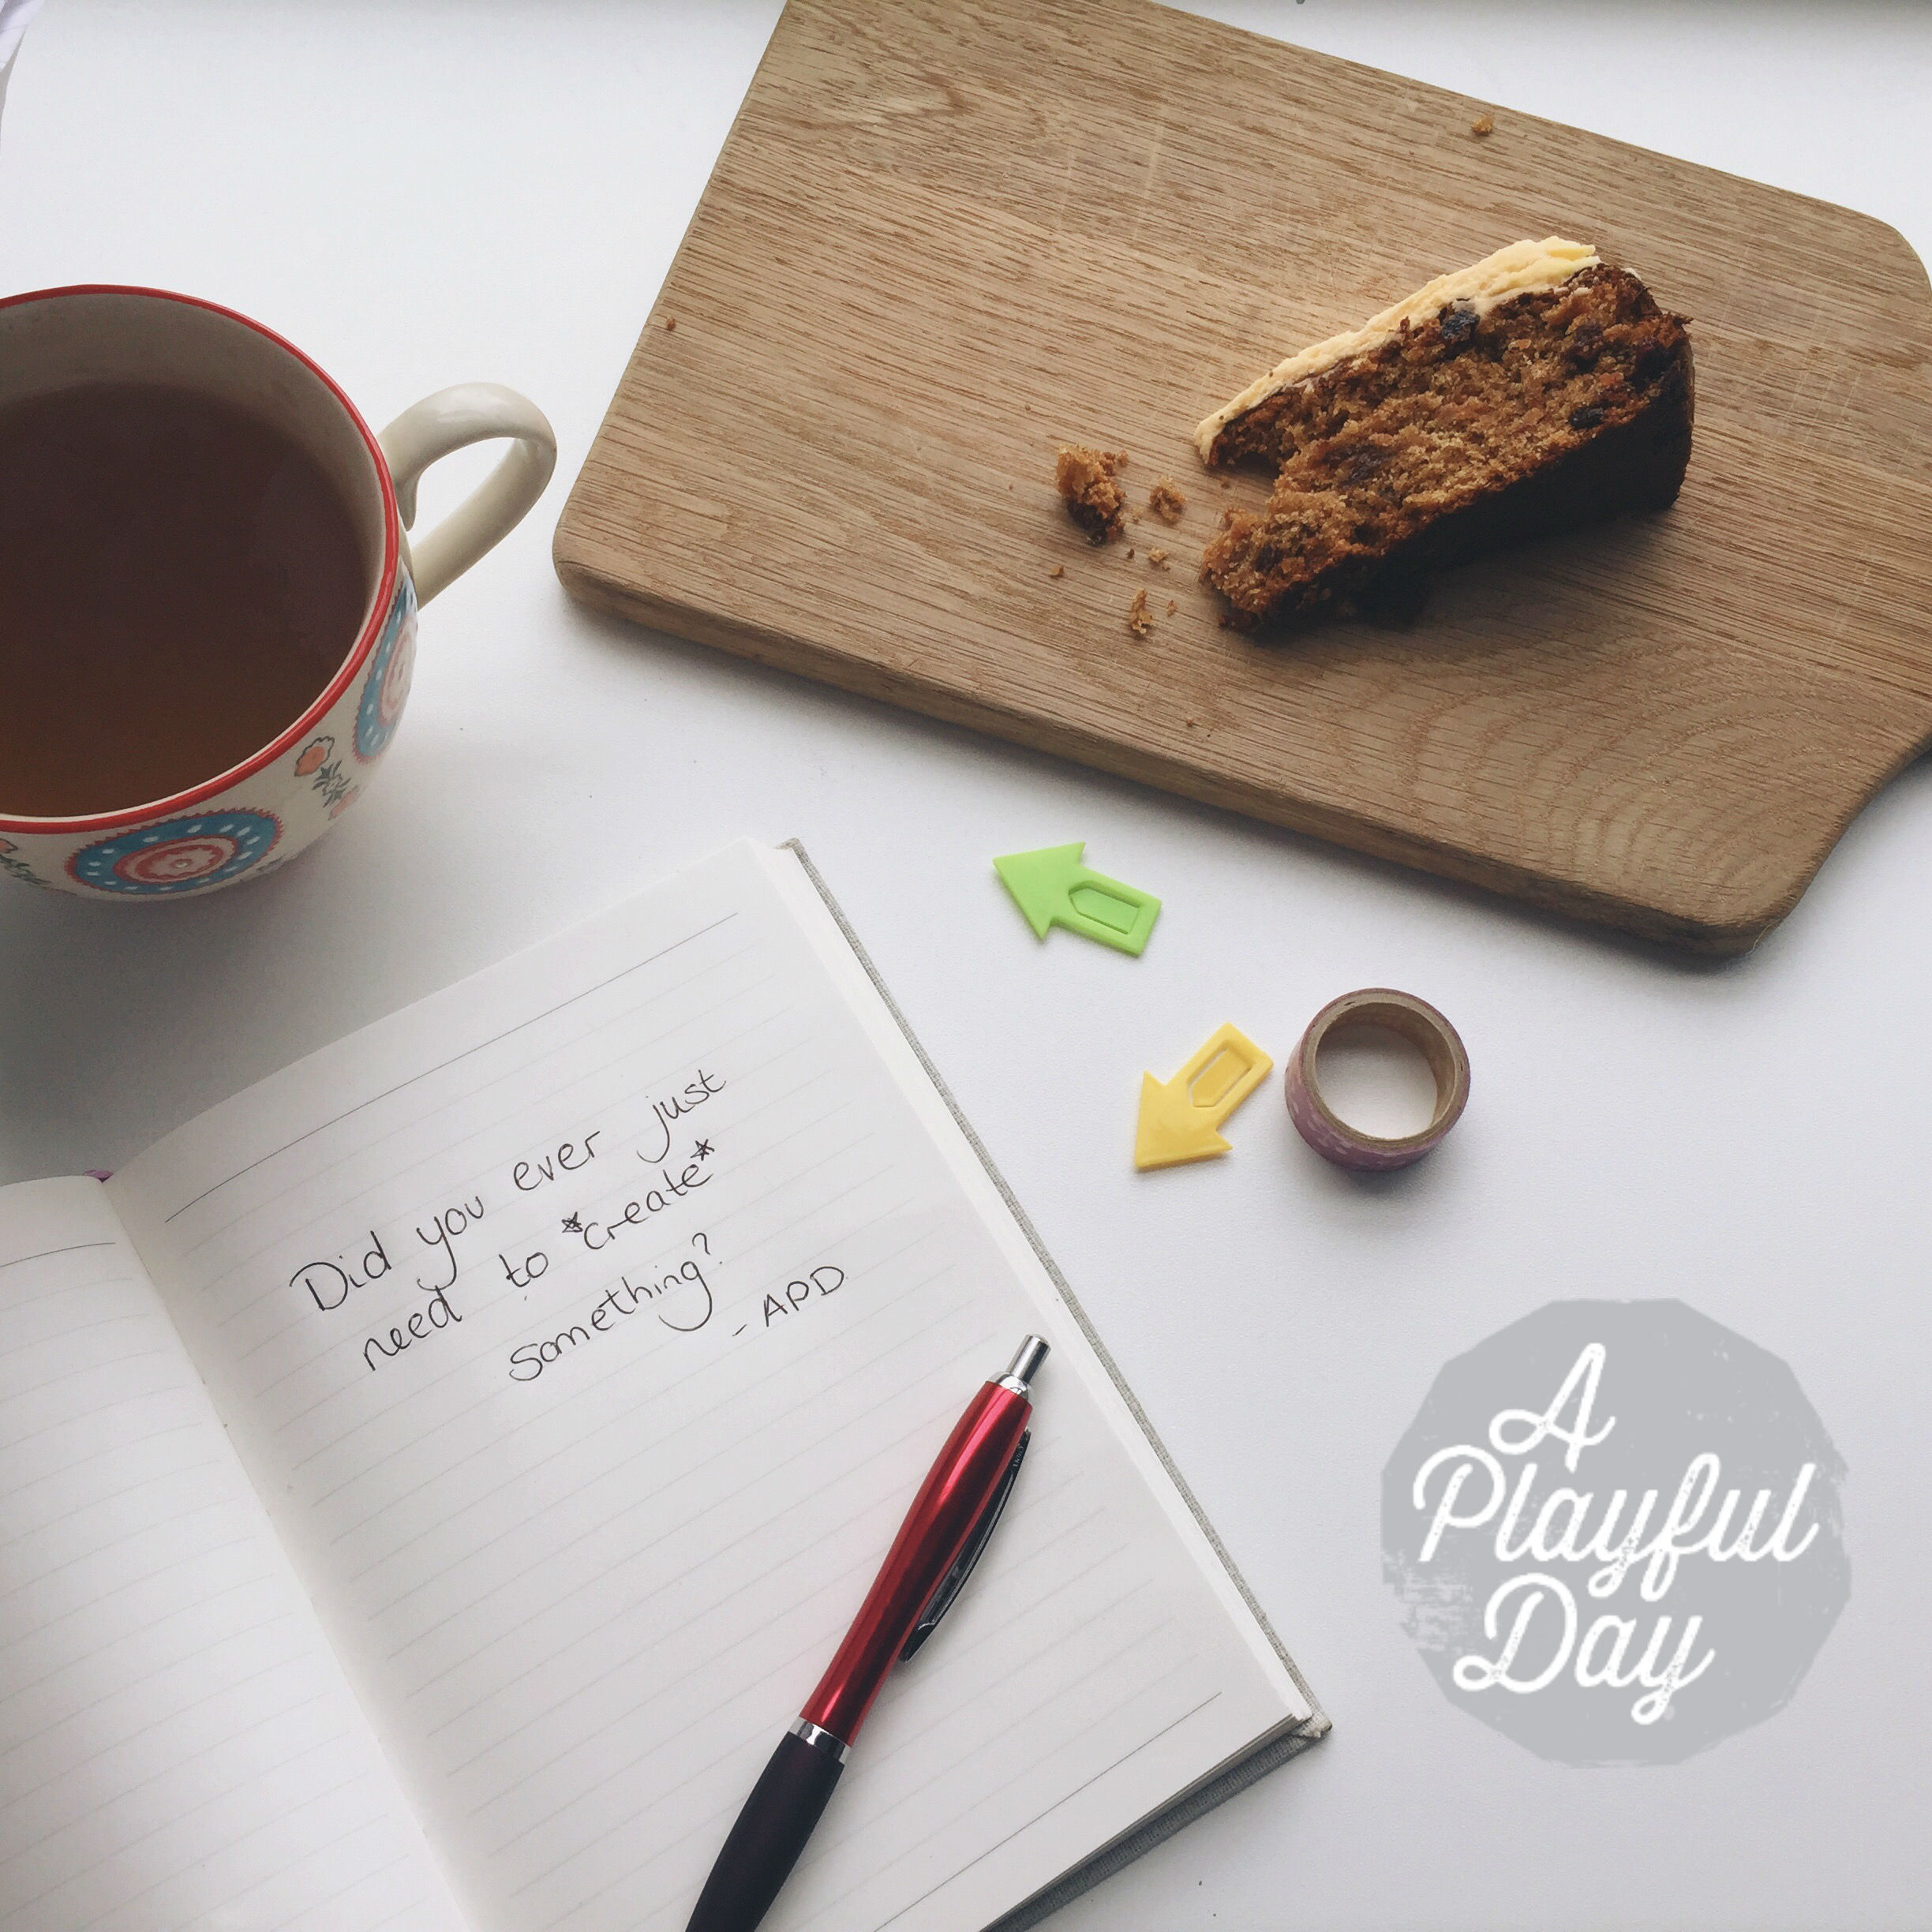 The A Playful Day podcast: Season 1, Episode !: The Maker's Year